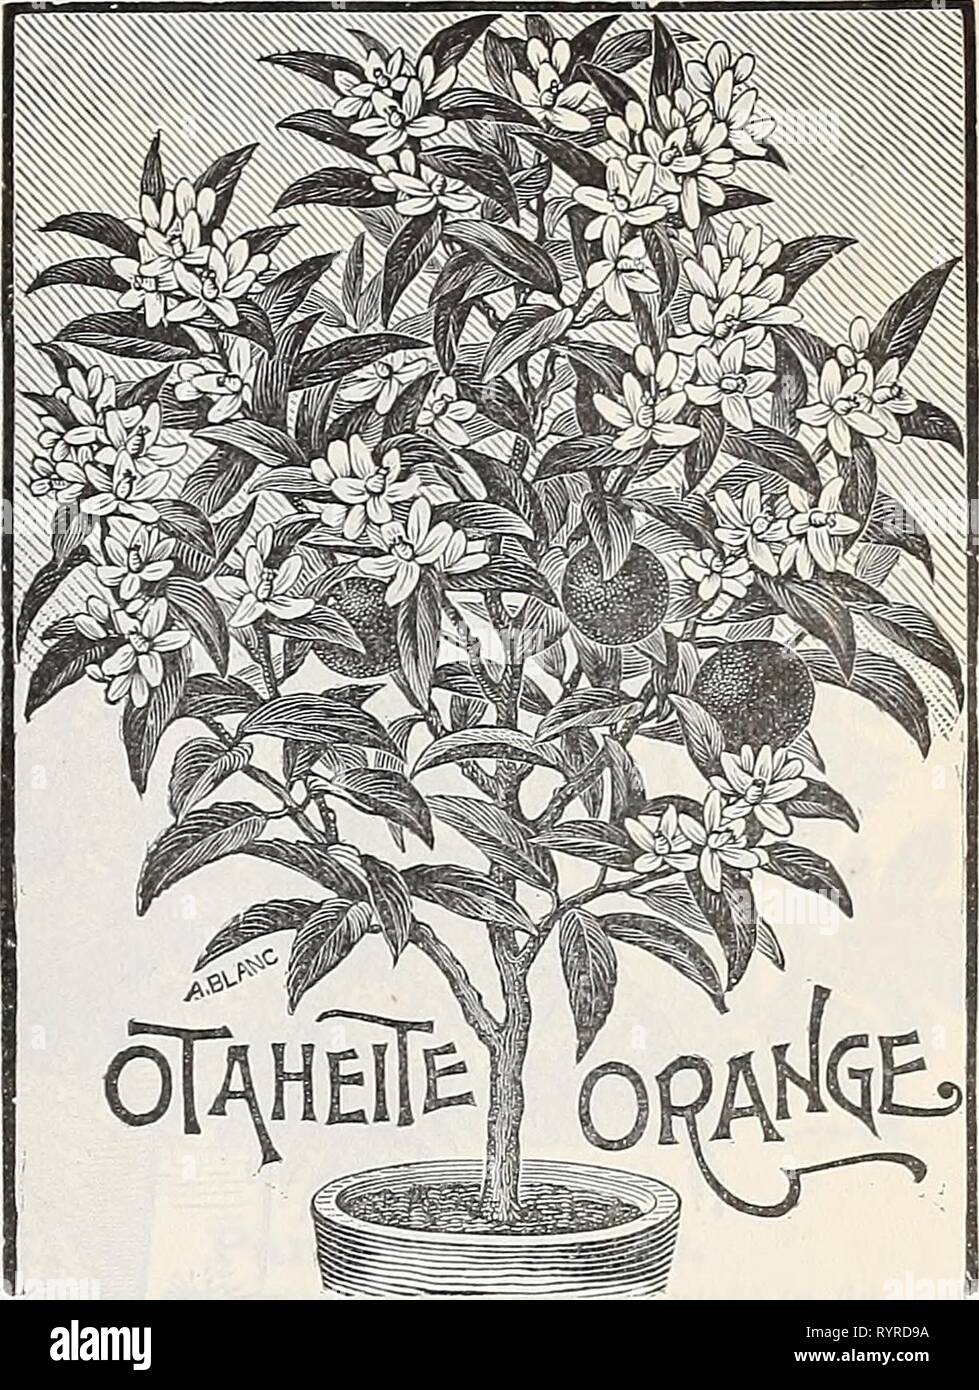 Dreer's quarterly wholesale price list Dreer's quarterly wholesale price list of bulbs plants vegetable and flower seeds for fall sowing implements, fertilizers and requisites . dreersquarterlyw1898henr Year: 1898  Ficns Flastica. 4 in. pots, 10 to 12 ins. high, 5 ' 15 ' ' 6 ' 18 to 24 ' ' (Rubber Plant.) H-50 per doz.; $35.00 per 100. 6.00 ' 50.00 ' 9 00 ' 70.00 ' jDEUTZCA LiiMuINEI. Deutzia Lemoinei. Without doubt one of the most important new hardy plants offered in many years. It is a hybrid between D. gracilis and D. parviflora, and has the advantage over the former of having flowers near - Stock Image